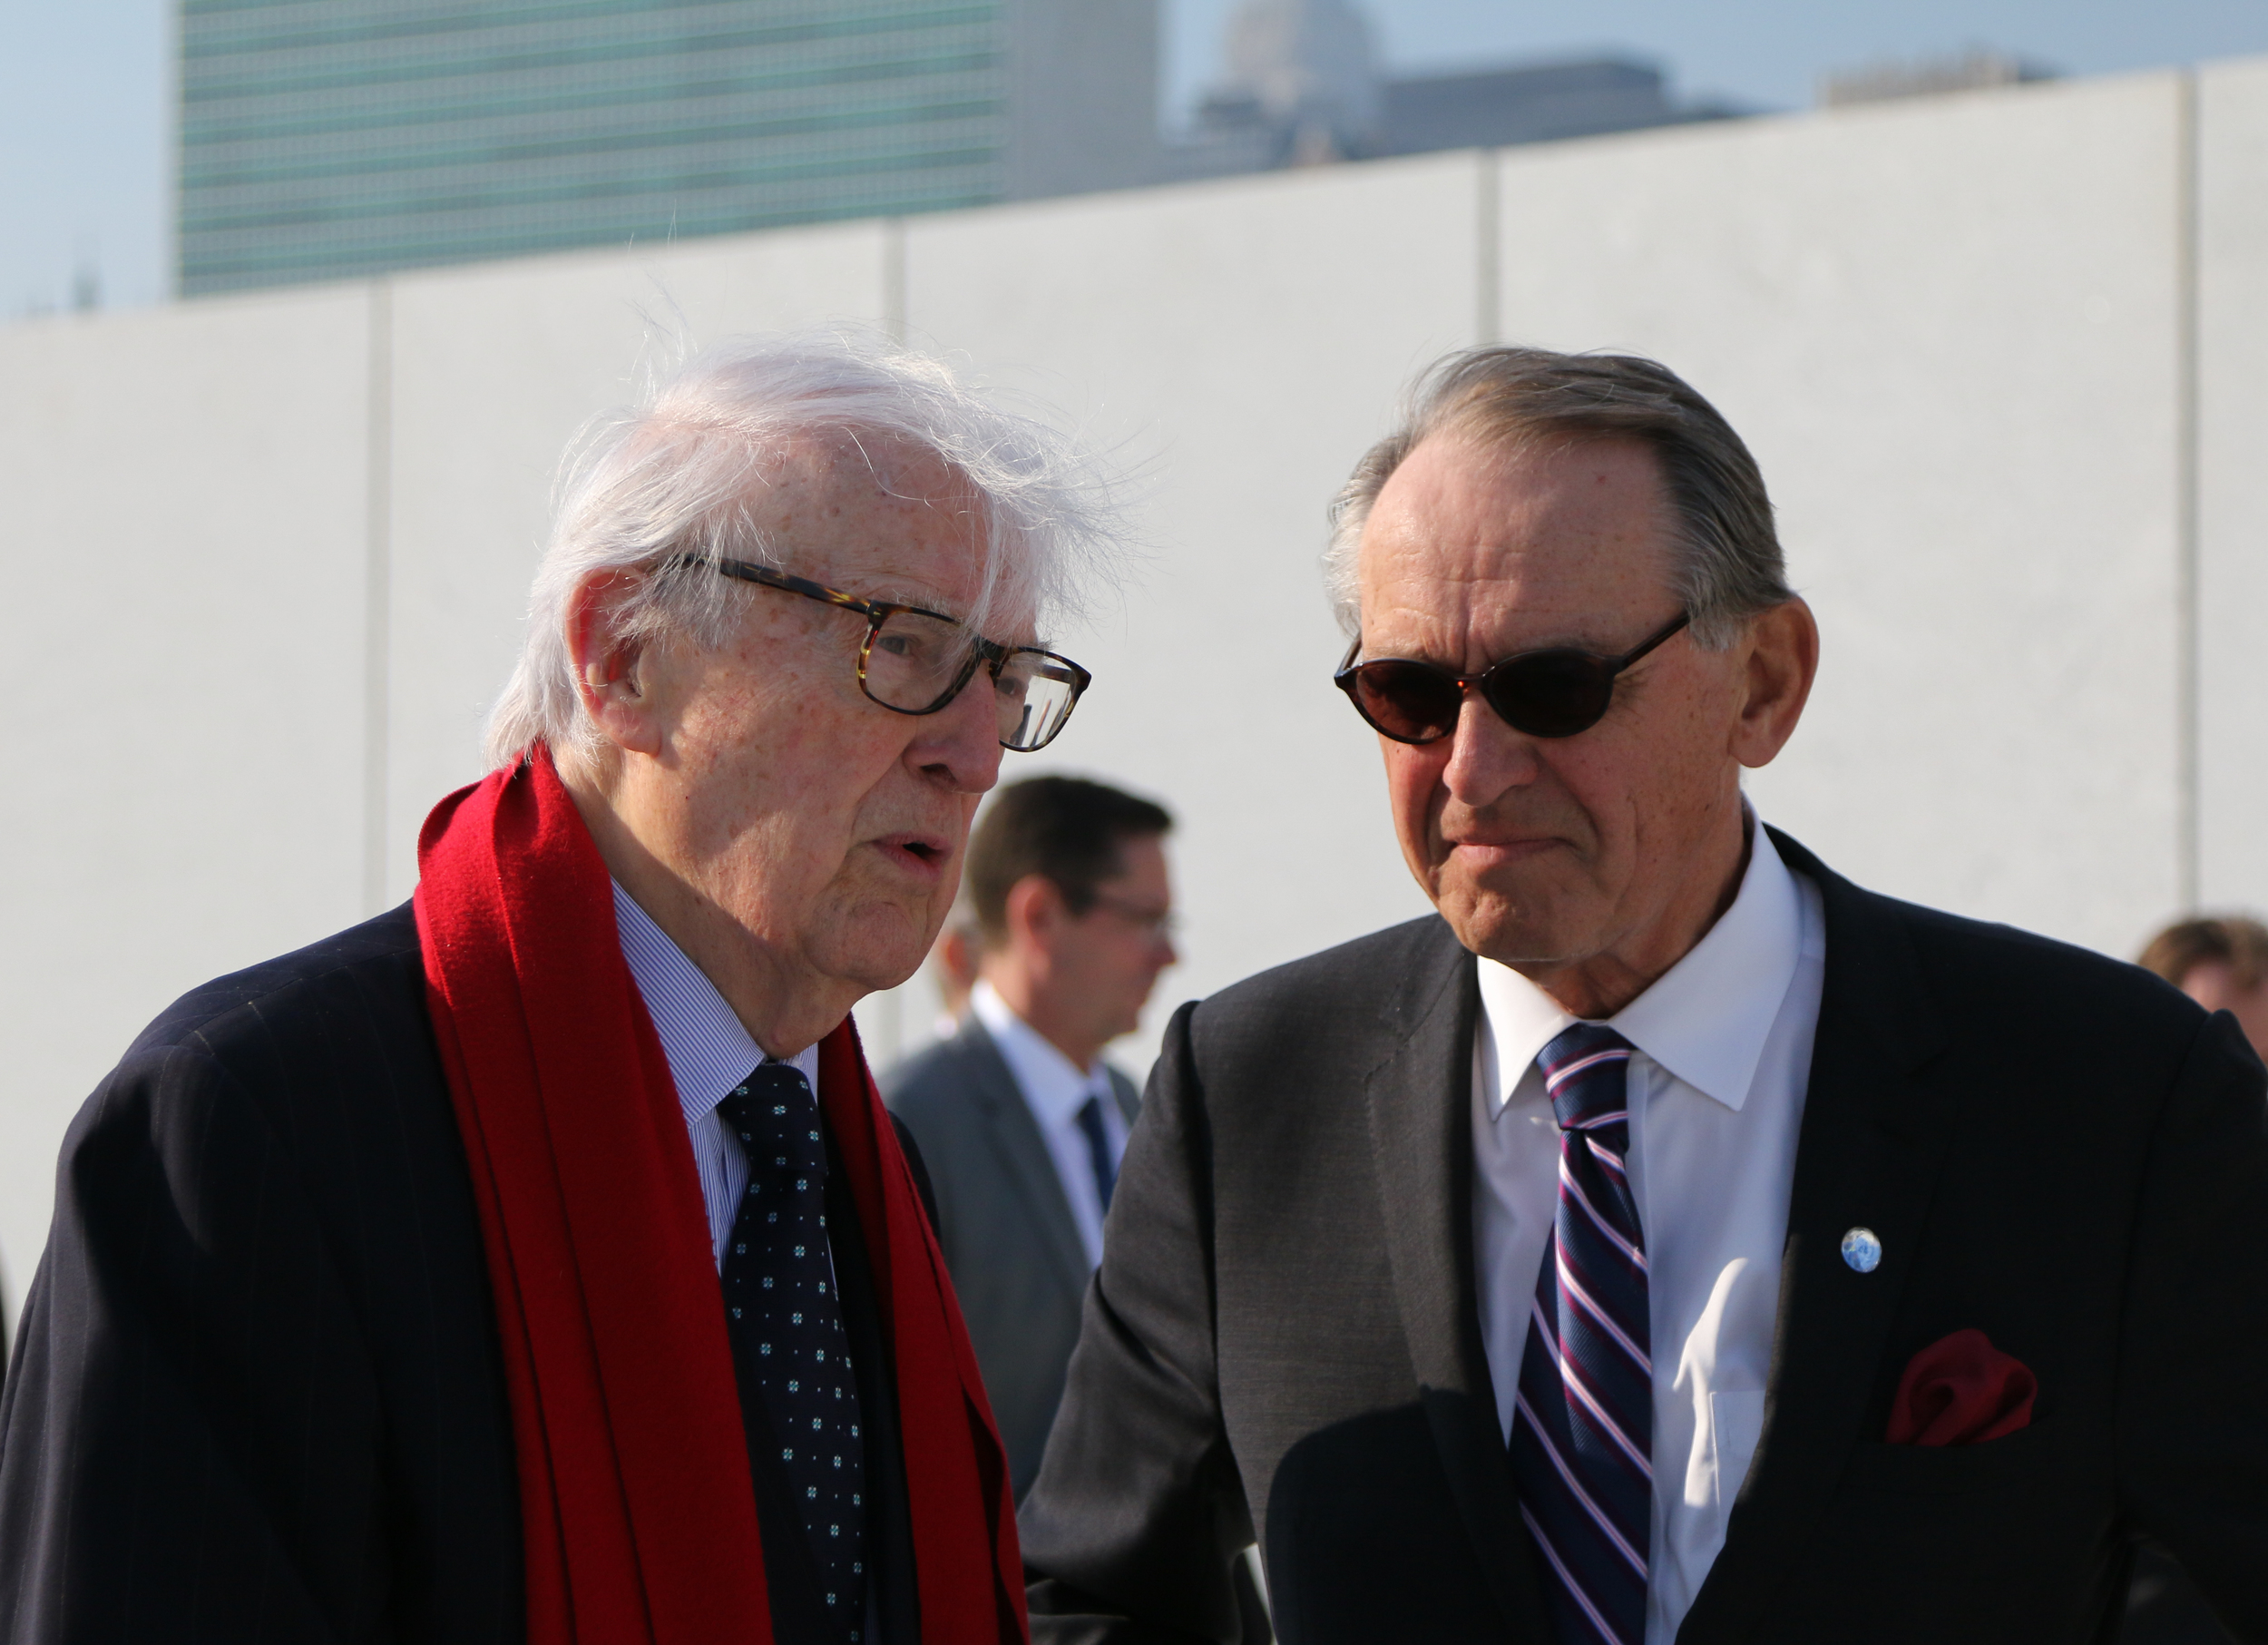 Ambassador William vanden Heuvel & UN Deputy Secretary-General Jan Eliasson